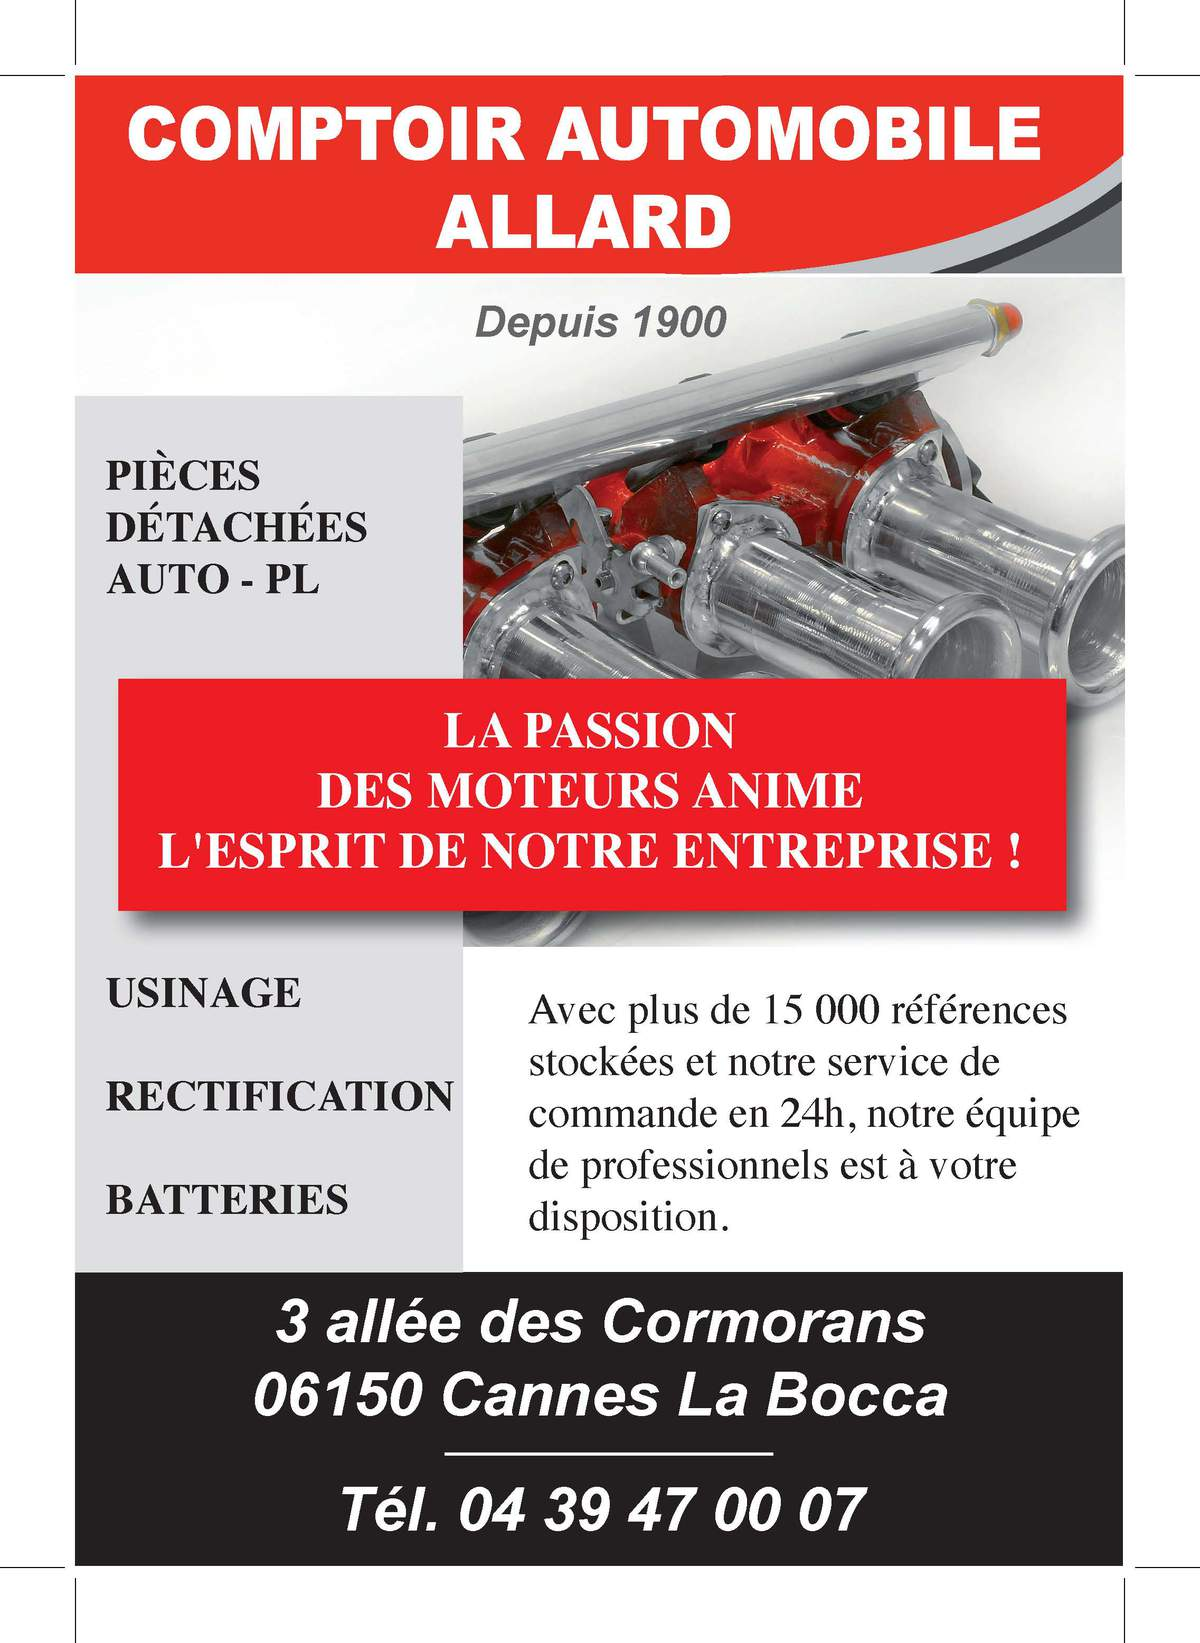 Comptoire Automobile Comptoir Automobile Allard Club Football Union Sportive De